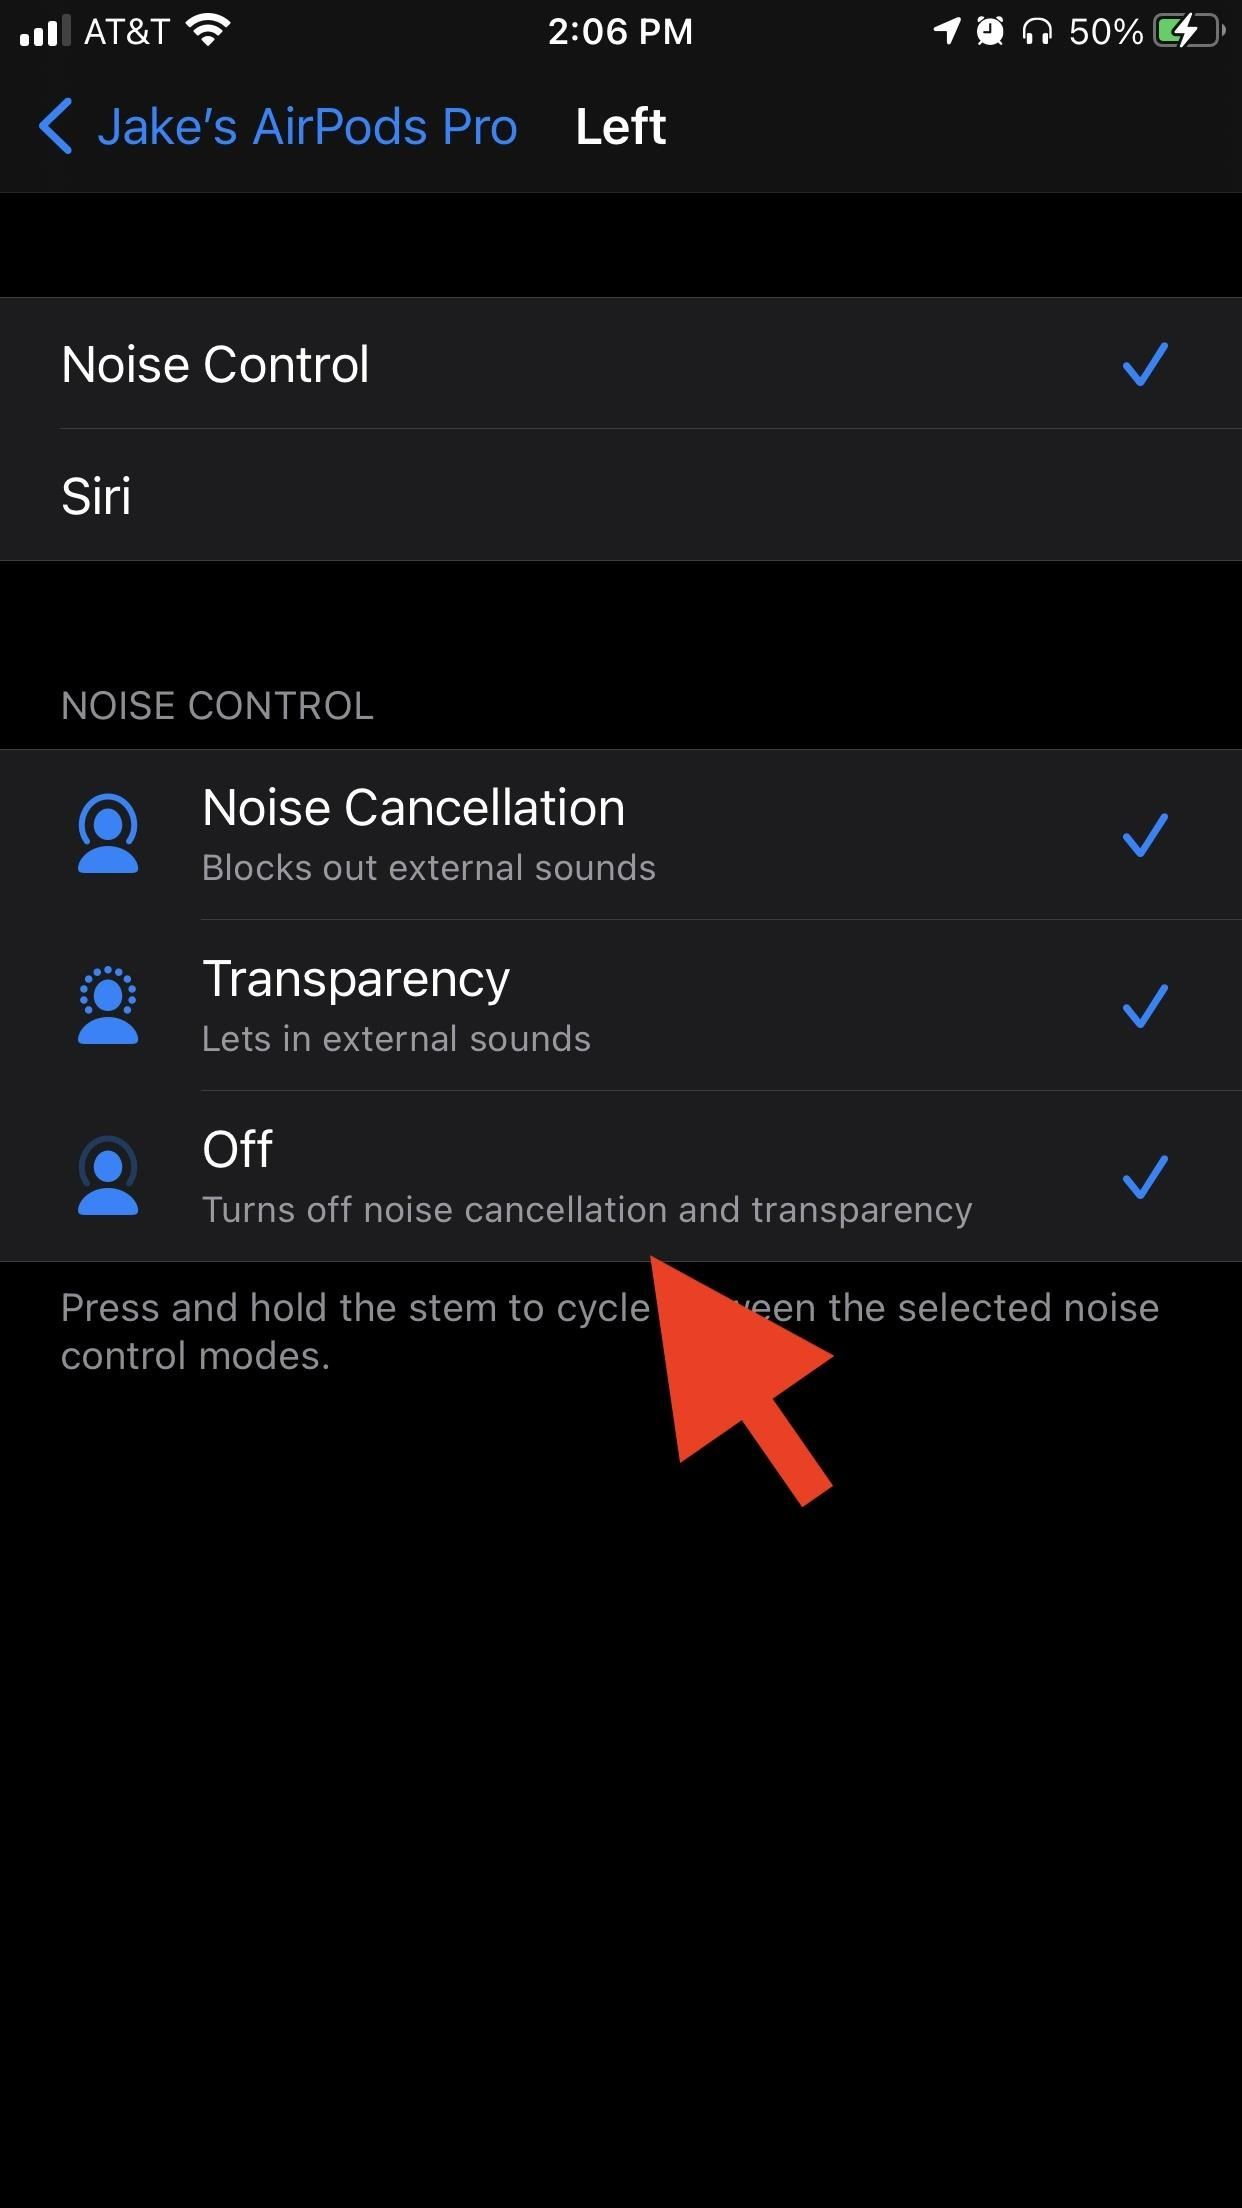 How to Turn Transparency or Noise Cancellation Off Using the AirPods Pro Stem